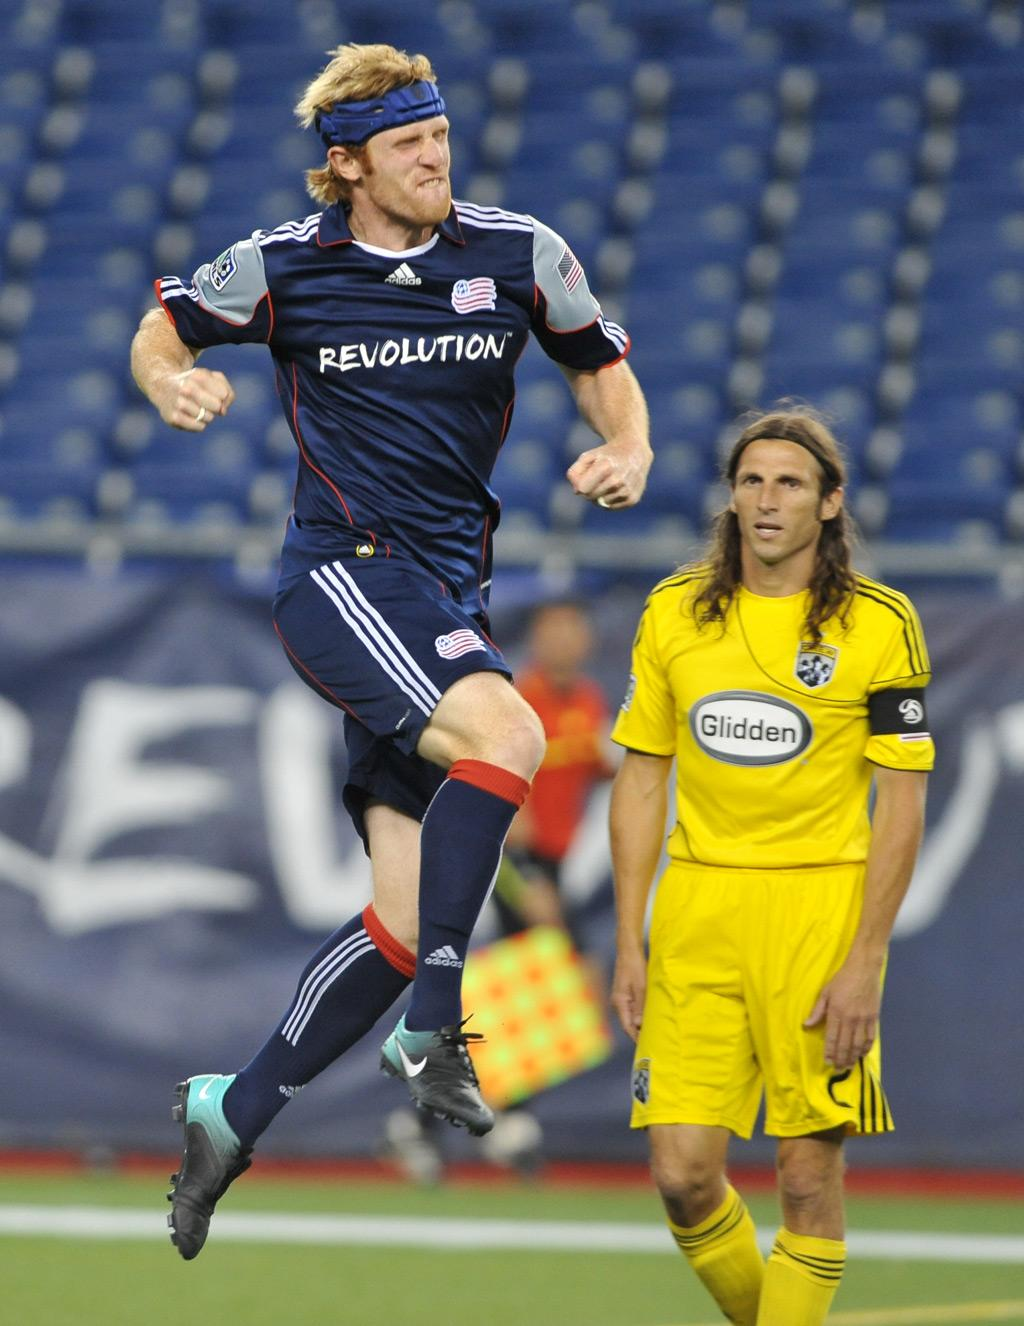 Pat Phelan scored his second goal of the season on Saturday night, but the Revs squandered another two-goal lead